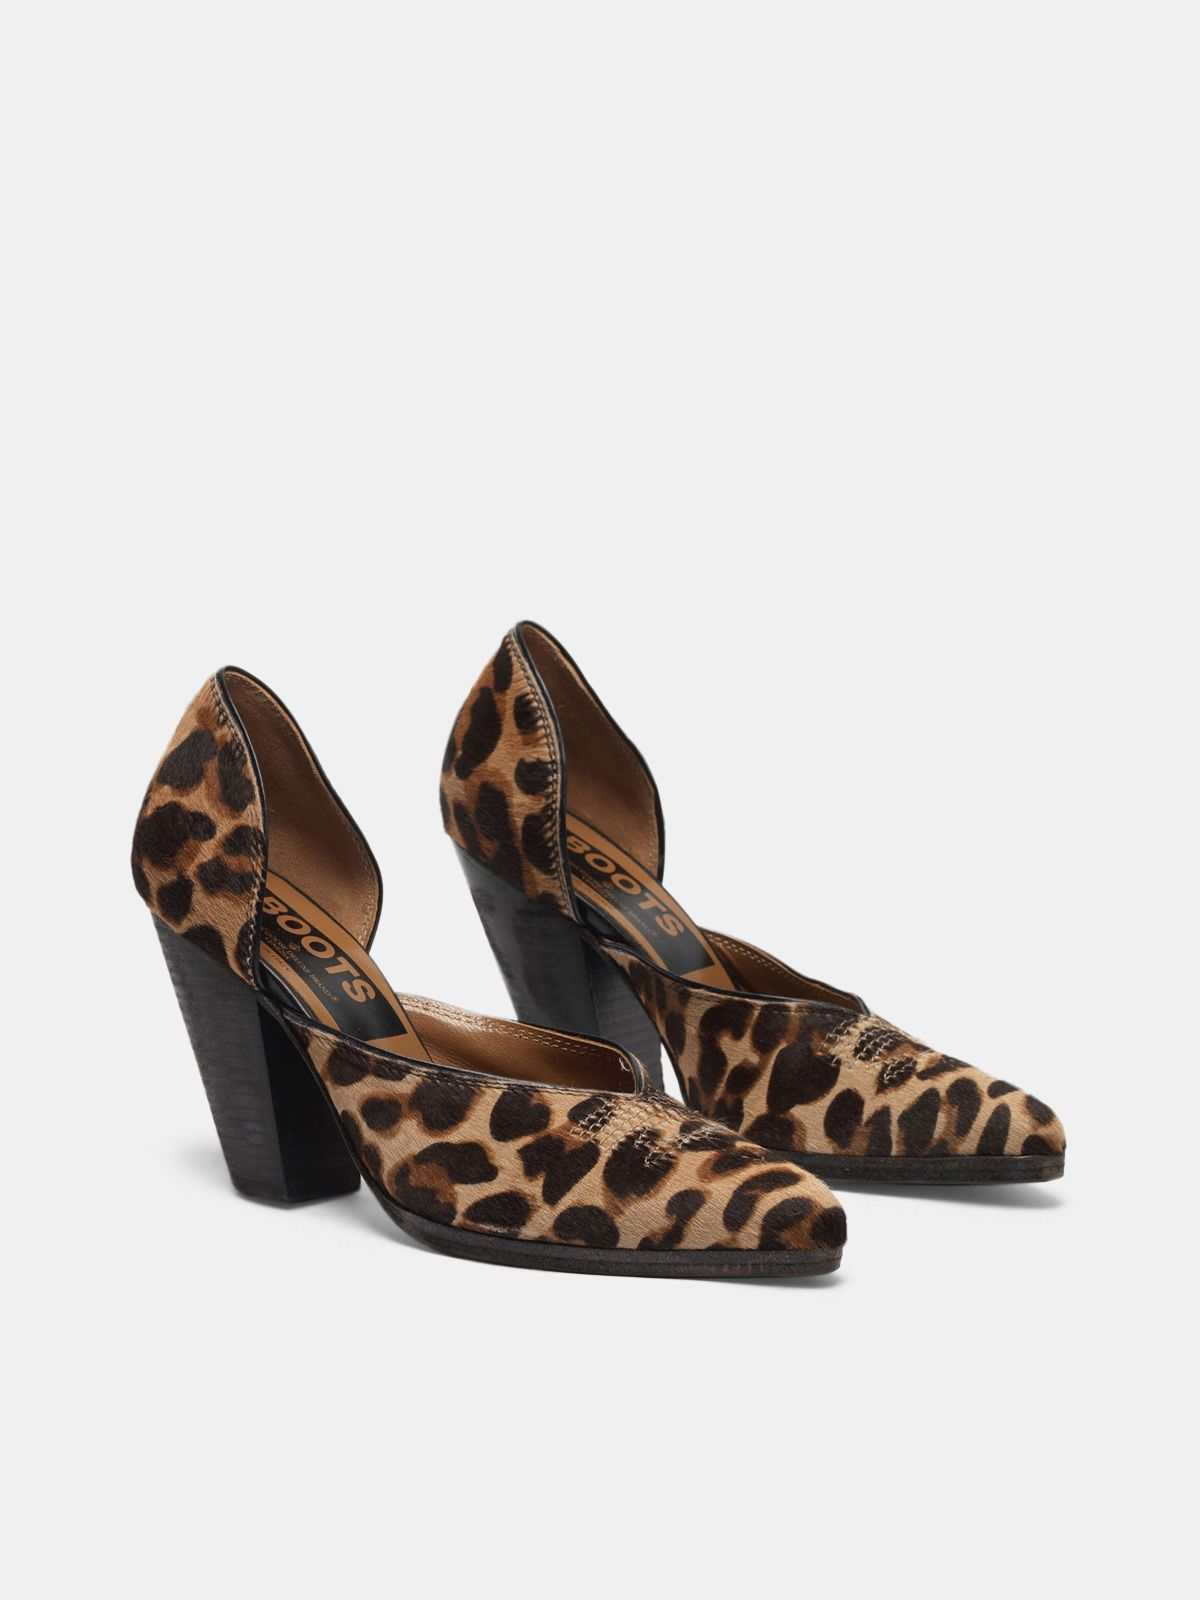 Golden Goose - Marfa pumps made of leopard print pony hide in